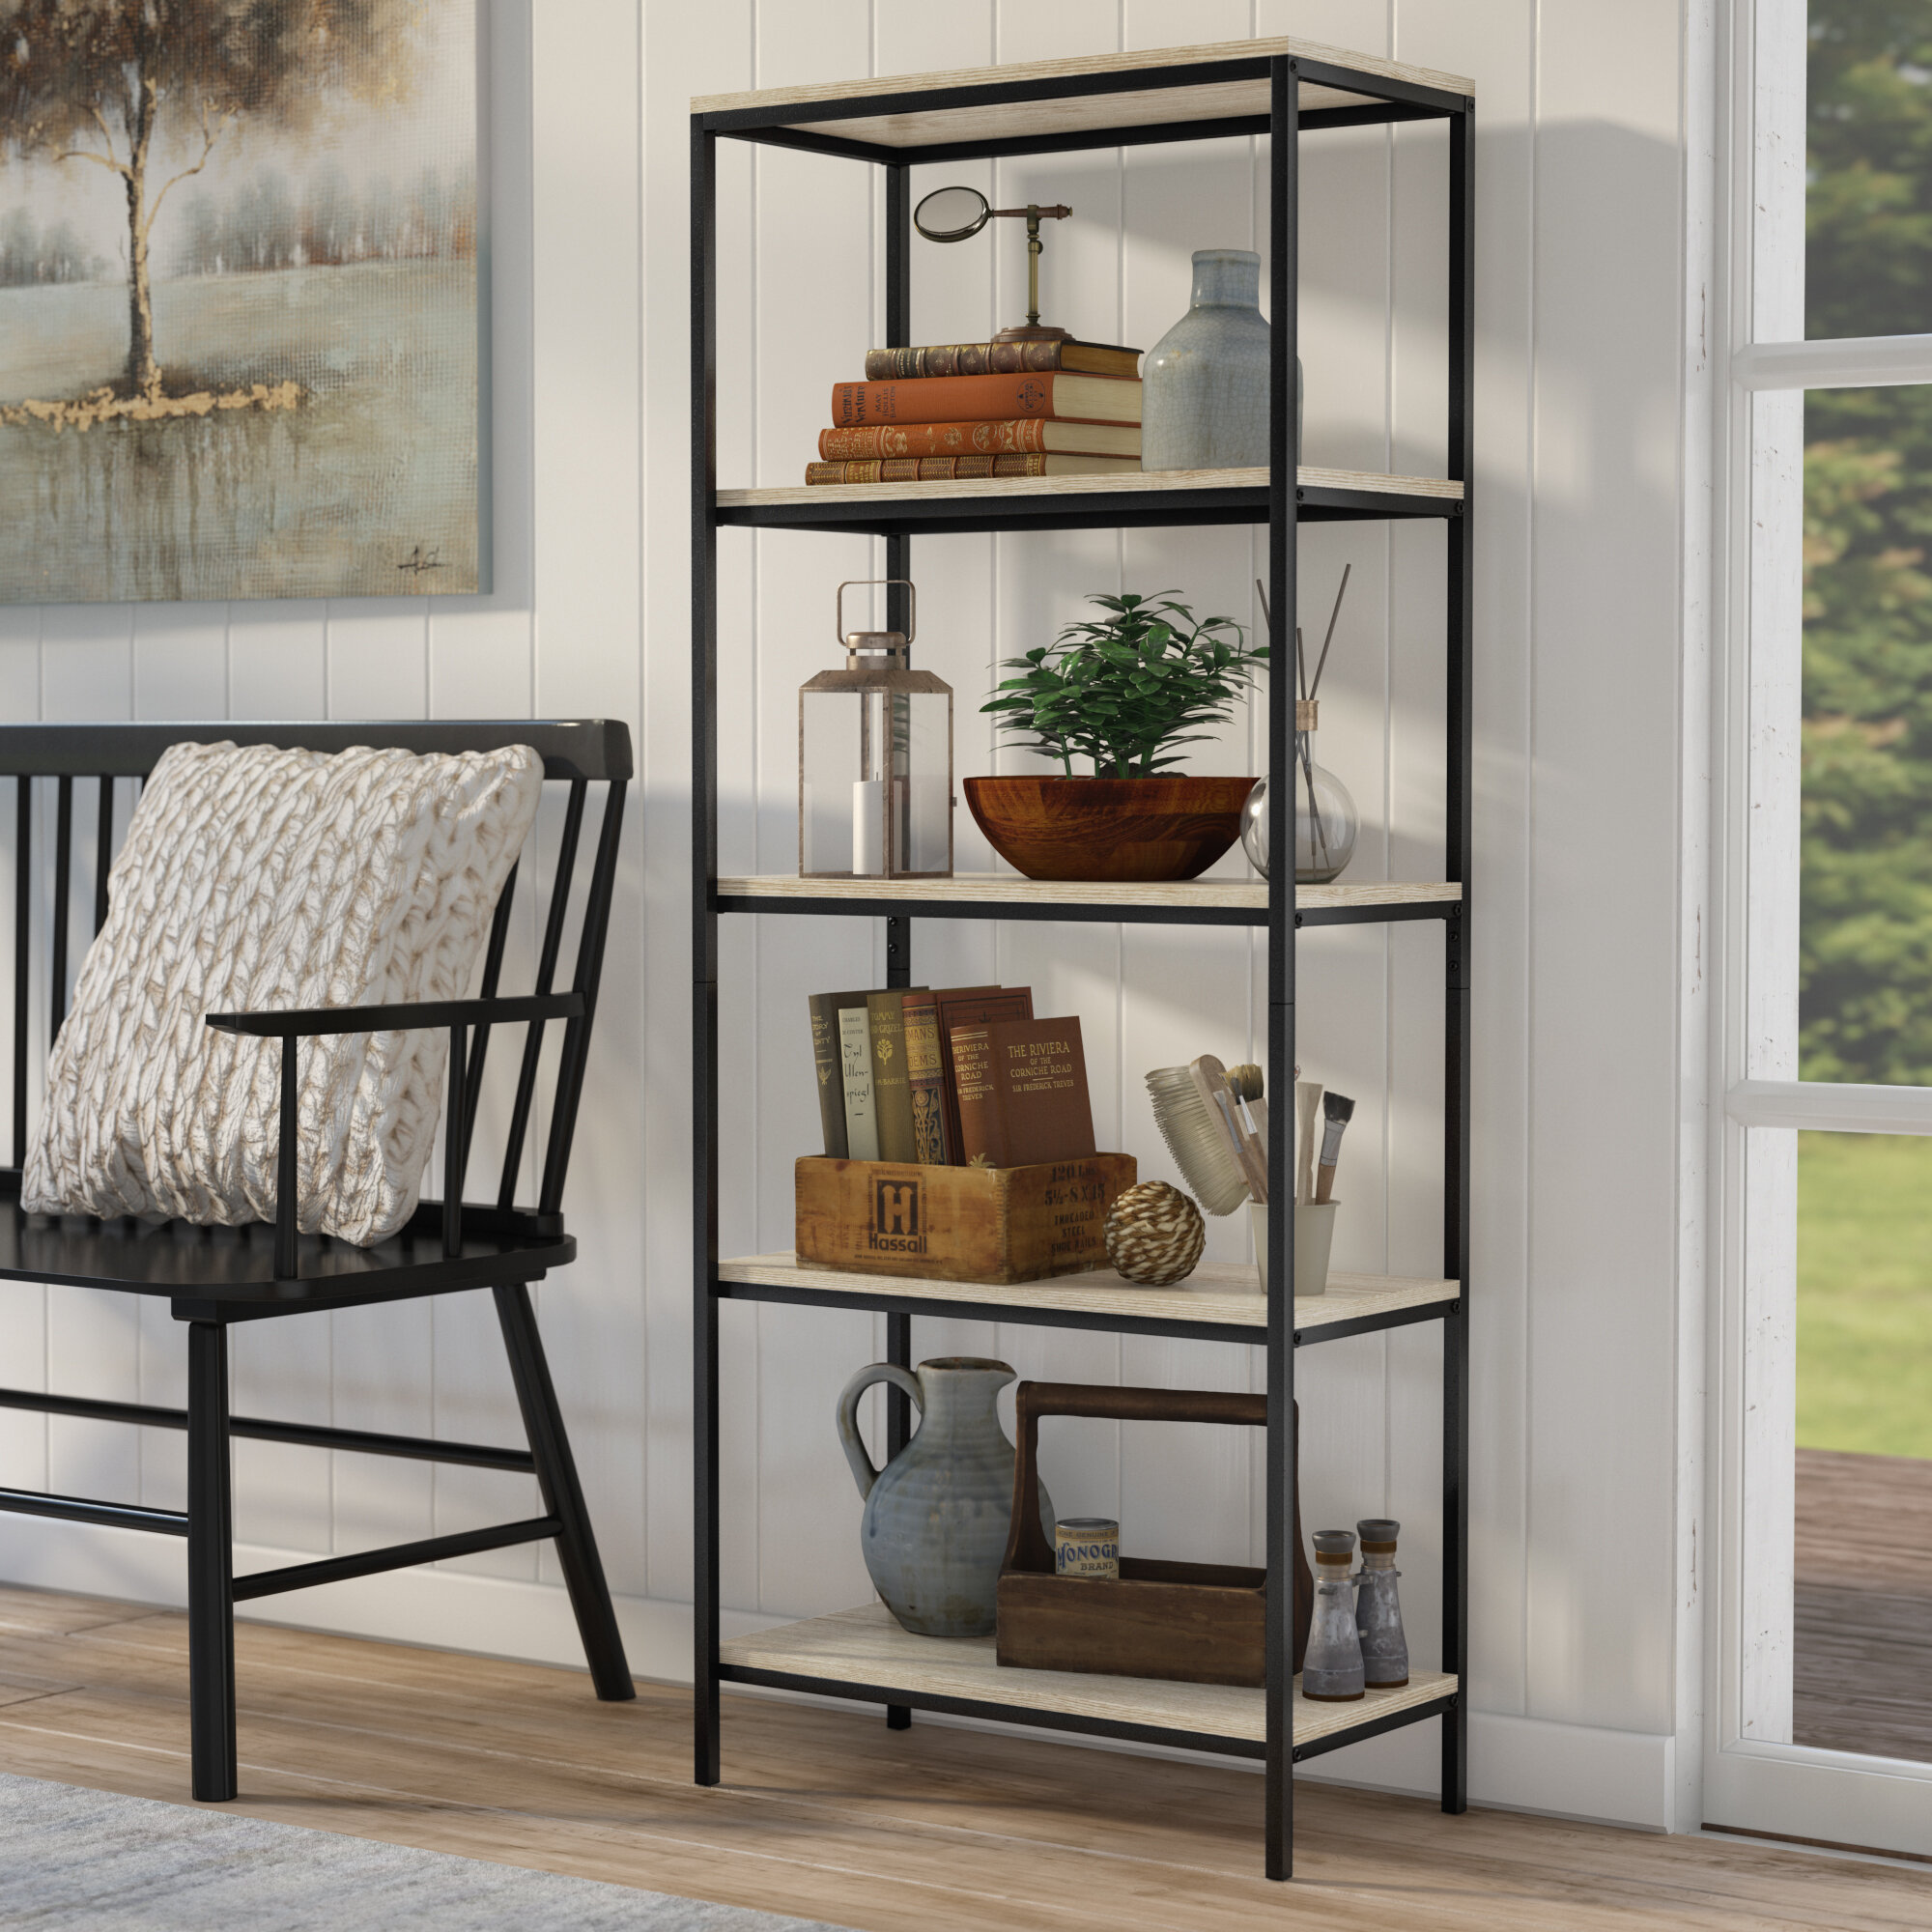 Laurel Foundry Modern Farmhouse Ermont Etagere Bookcase Reviews